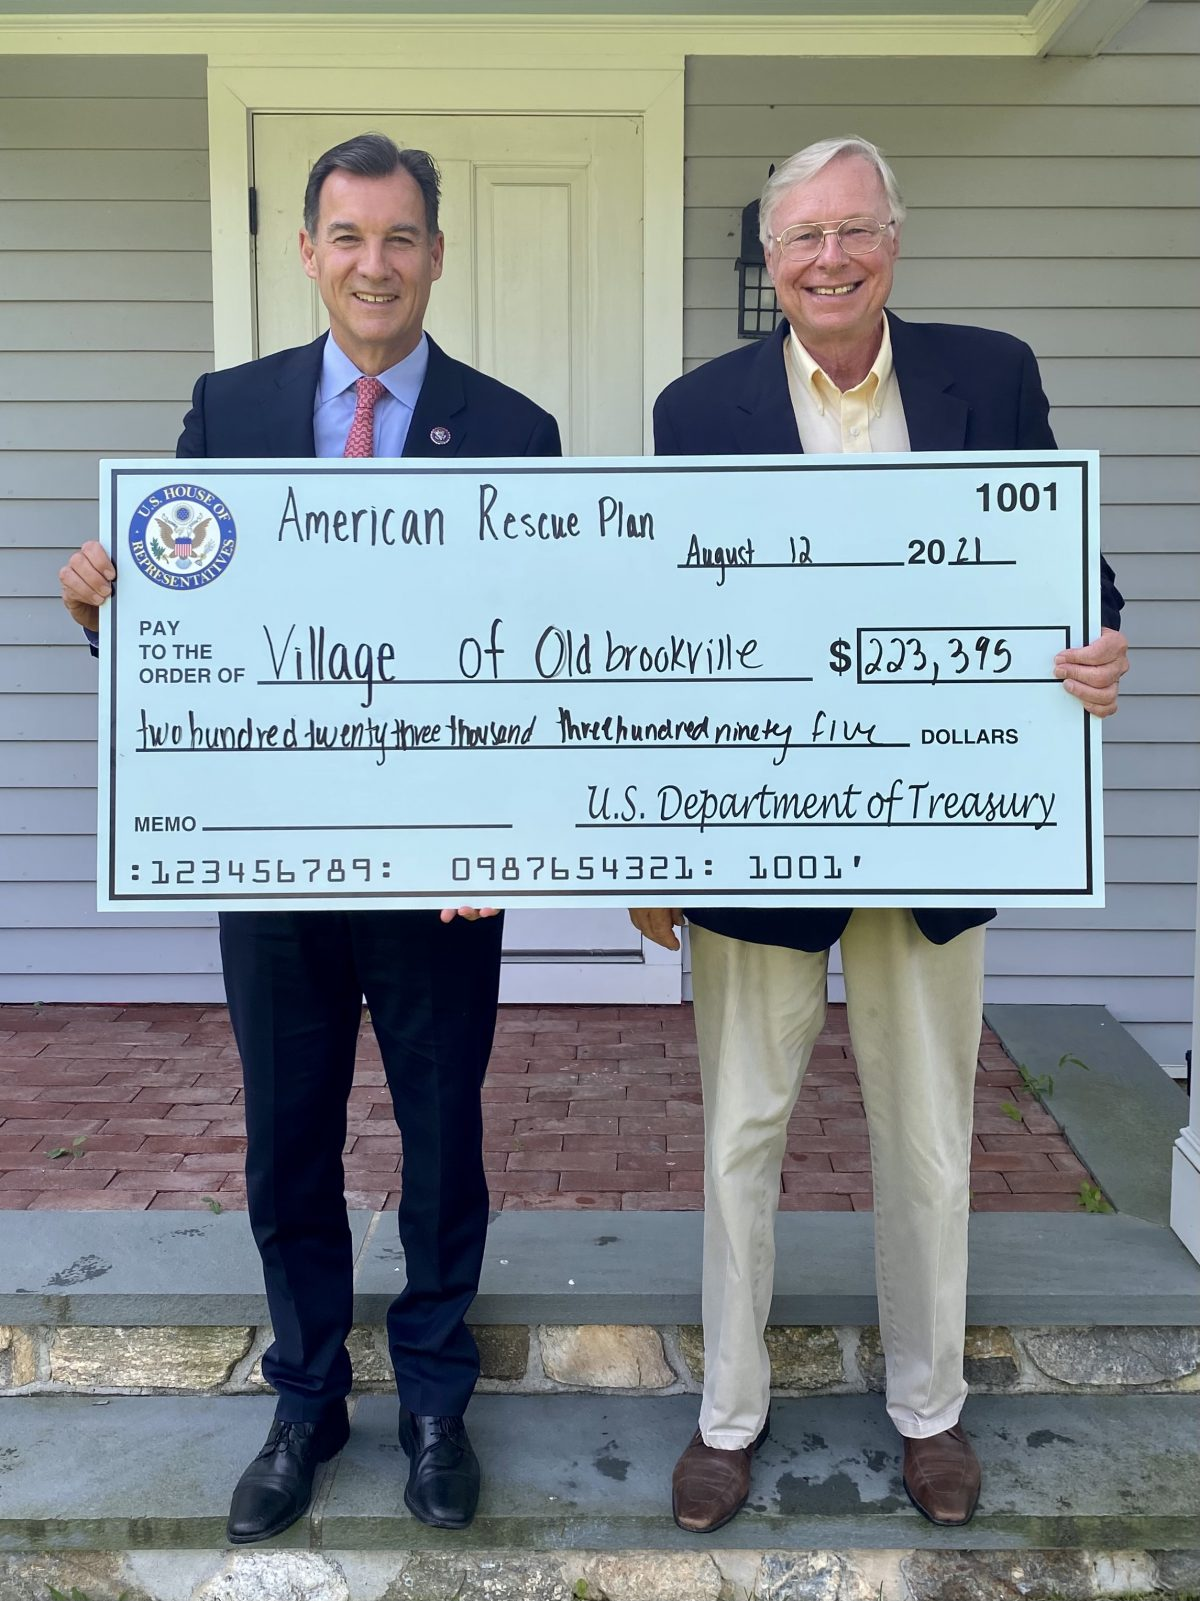 Pictured are United States Congressman Tom Suozzi presenting a mock check to Old Brookville Mayor Bernie Ryba